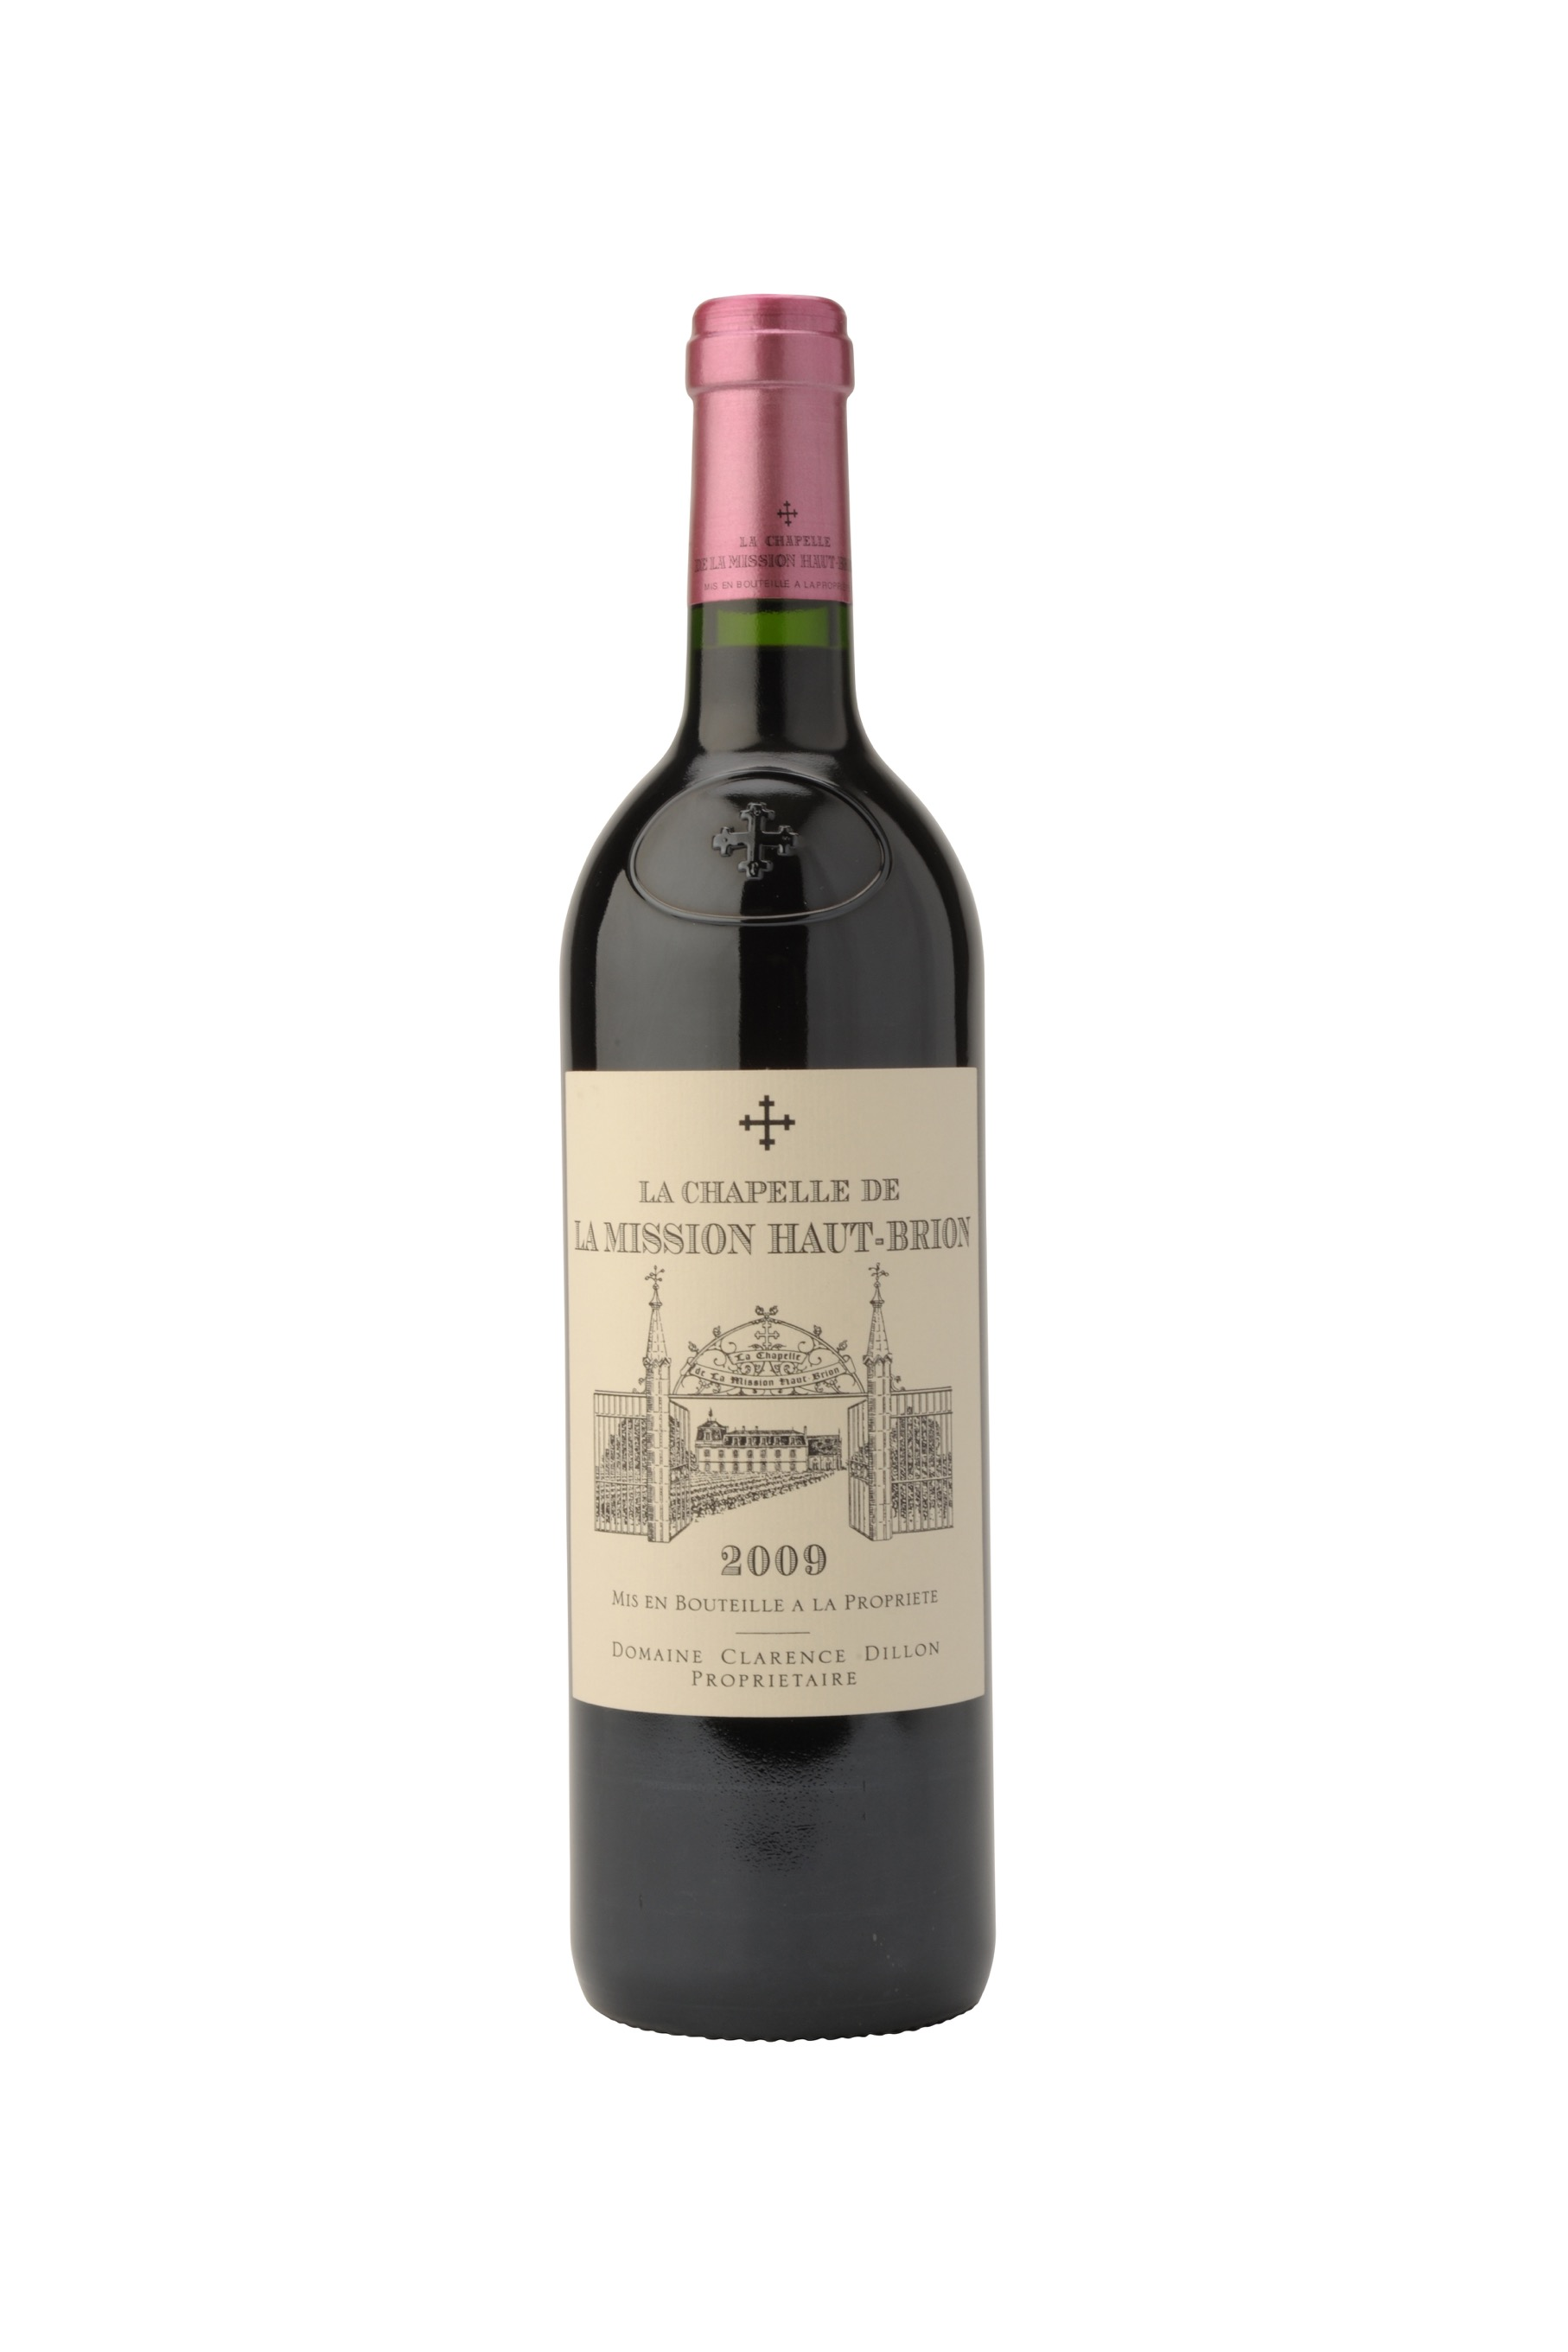 La Chapelle De La Mission Haut Brion'10, 750 ml